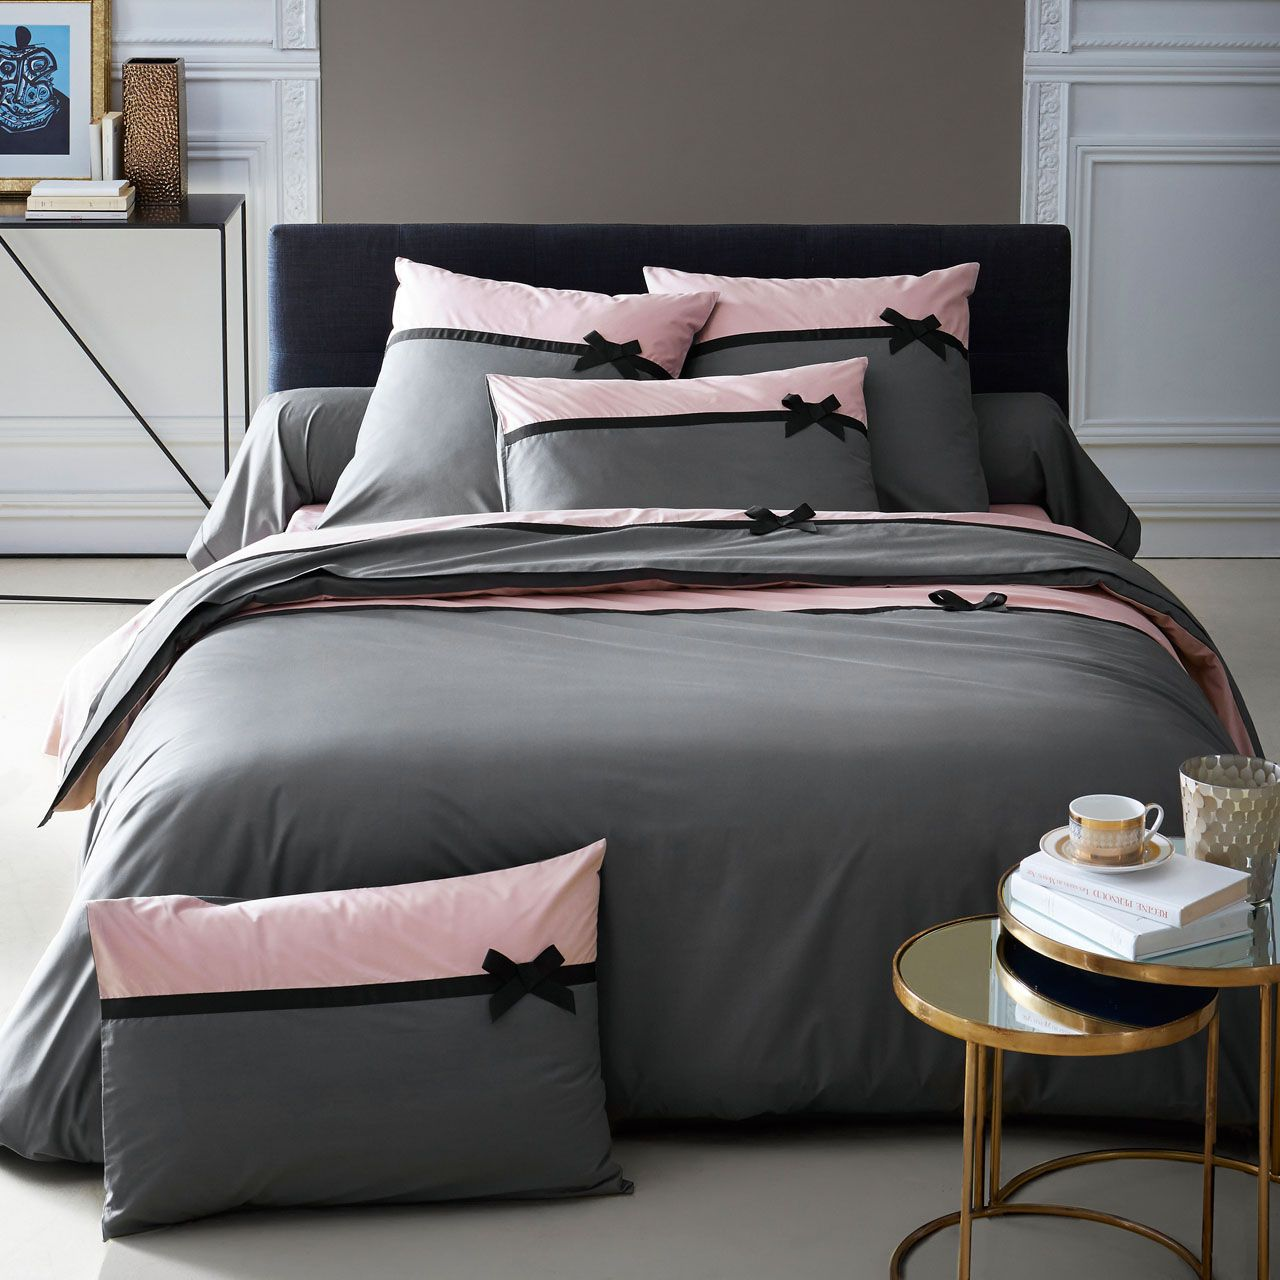 drap housse percale frou frou anthracite 180x200 tradilinge. Black Bedroom Furniture Sets. Home Design Ideas